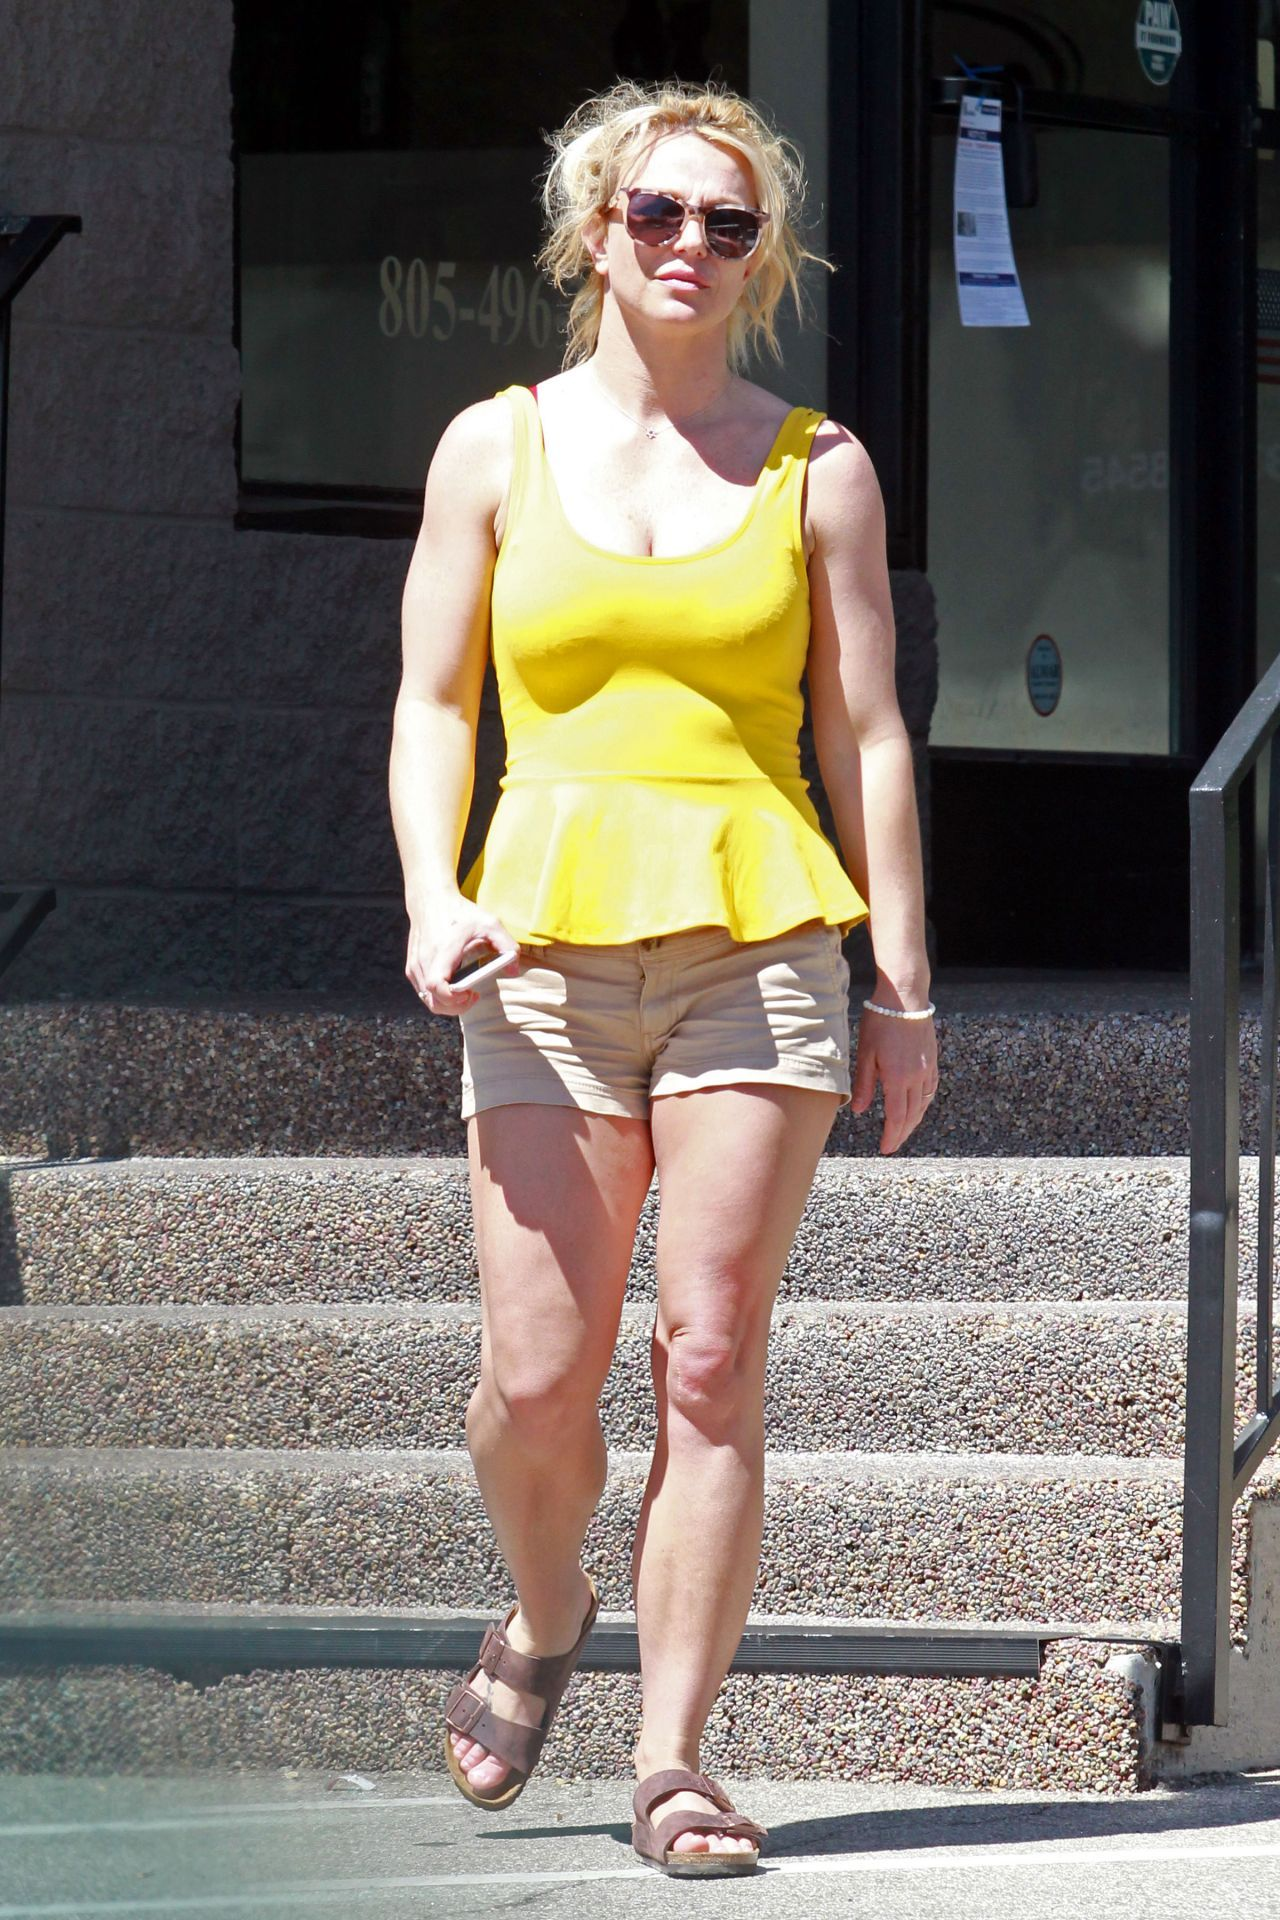 Britney Spears Leggy, October nude (92 photo), Tits Celebrity fotos